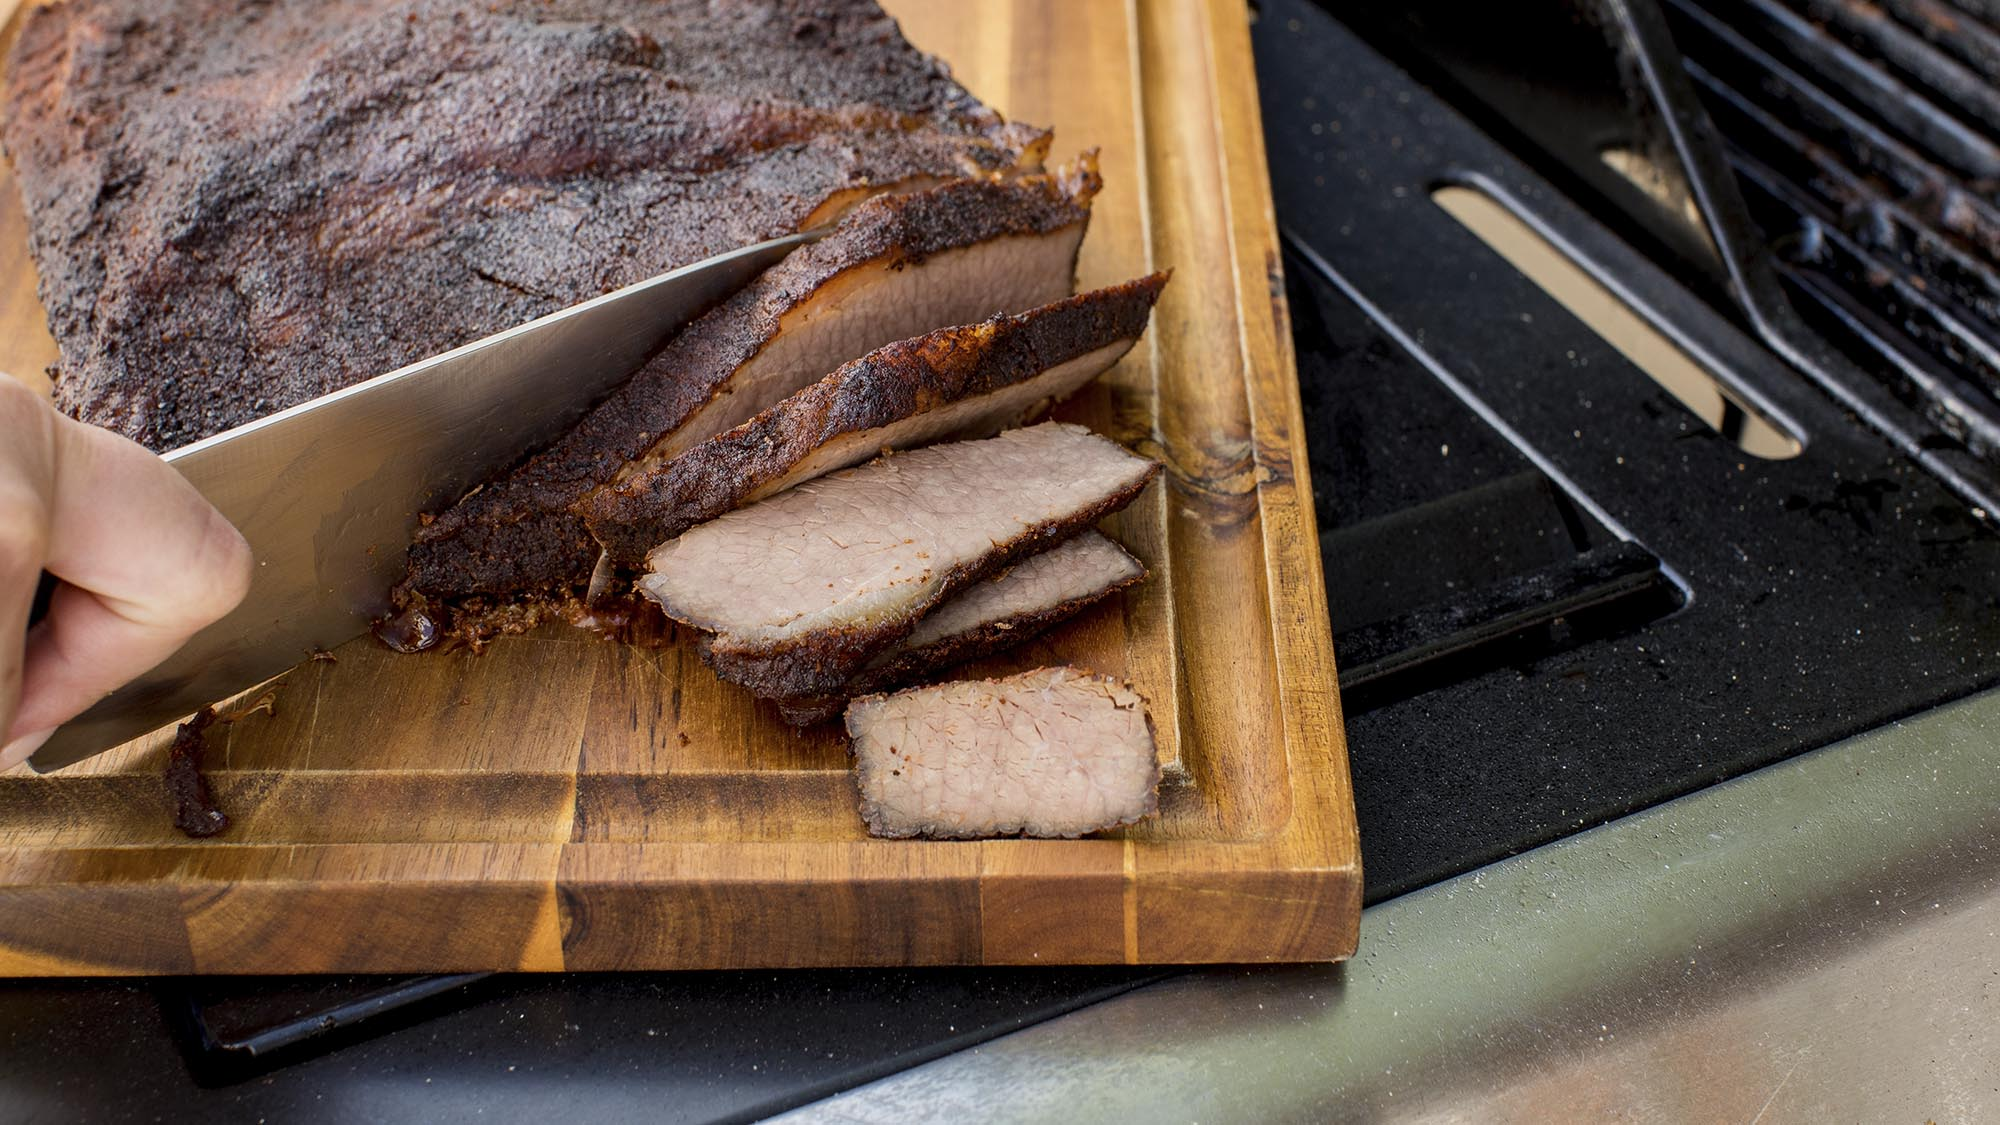 McCormick Grill Mates Sweet and Smoky BBQ Brisket Sandwiches